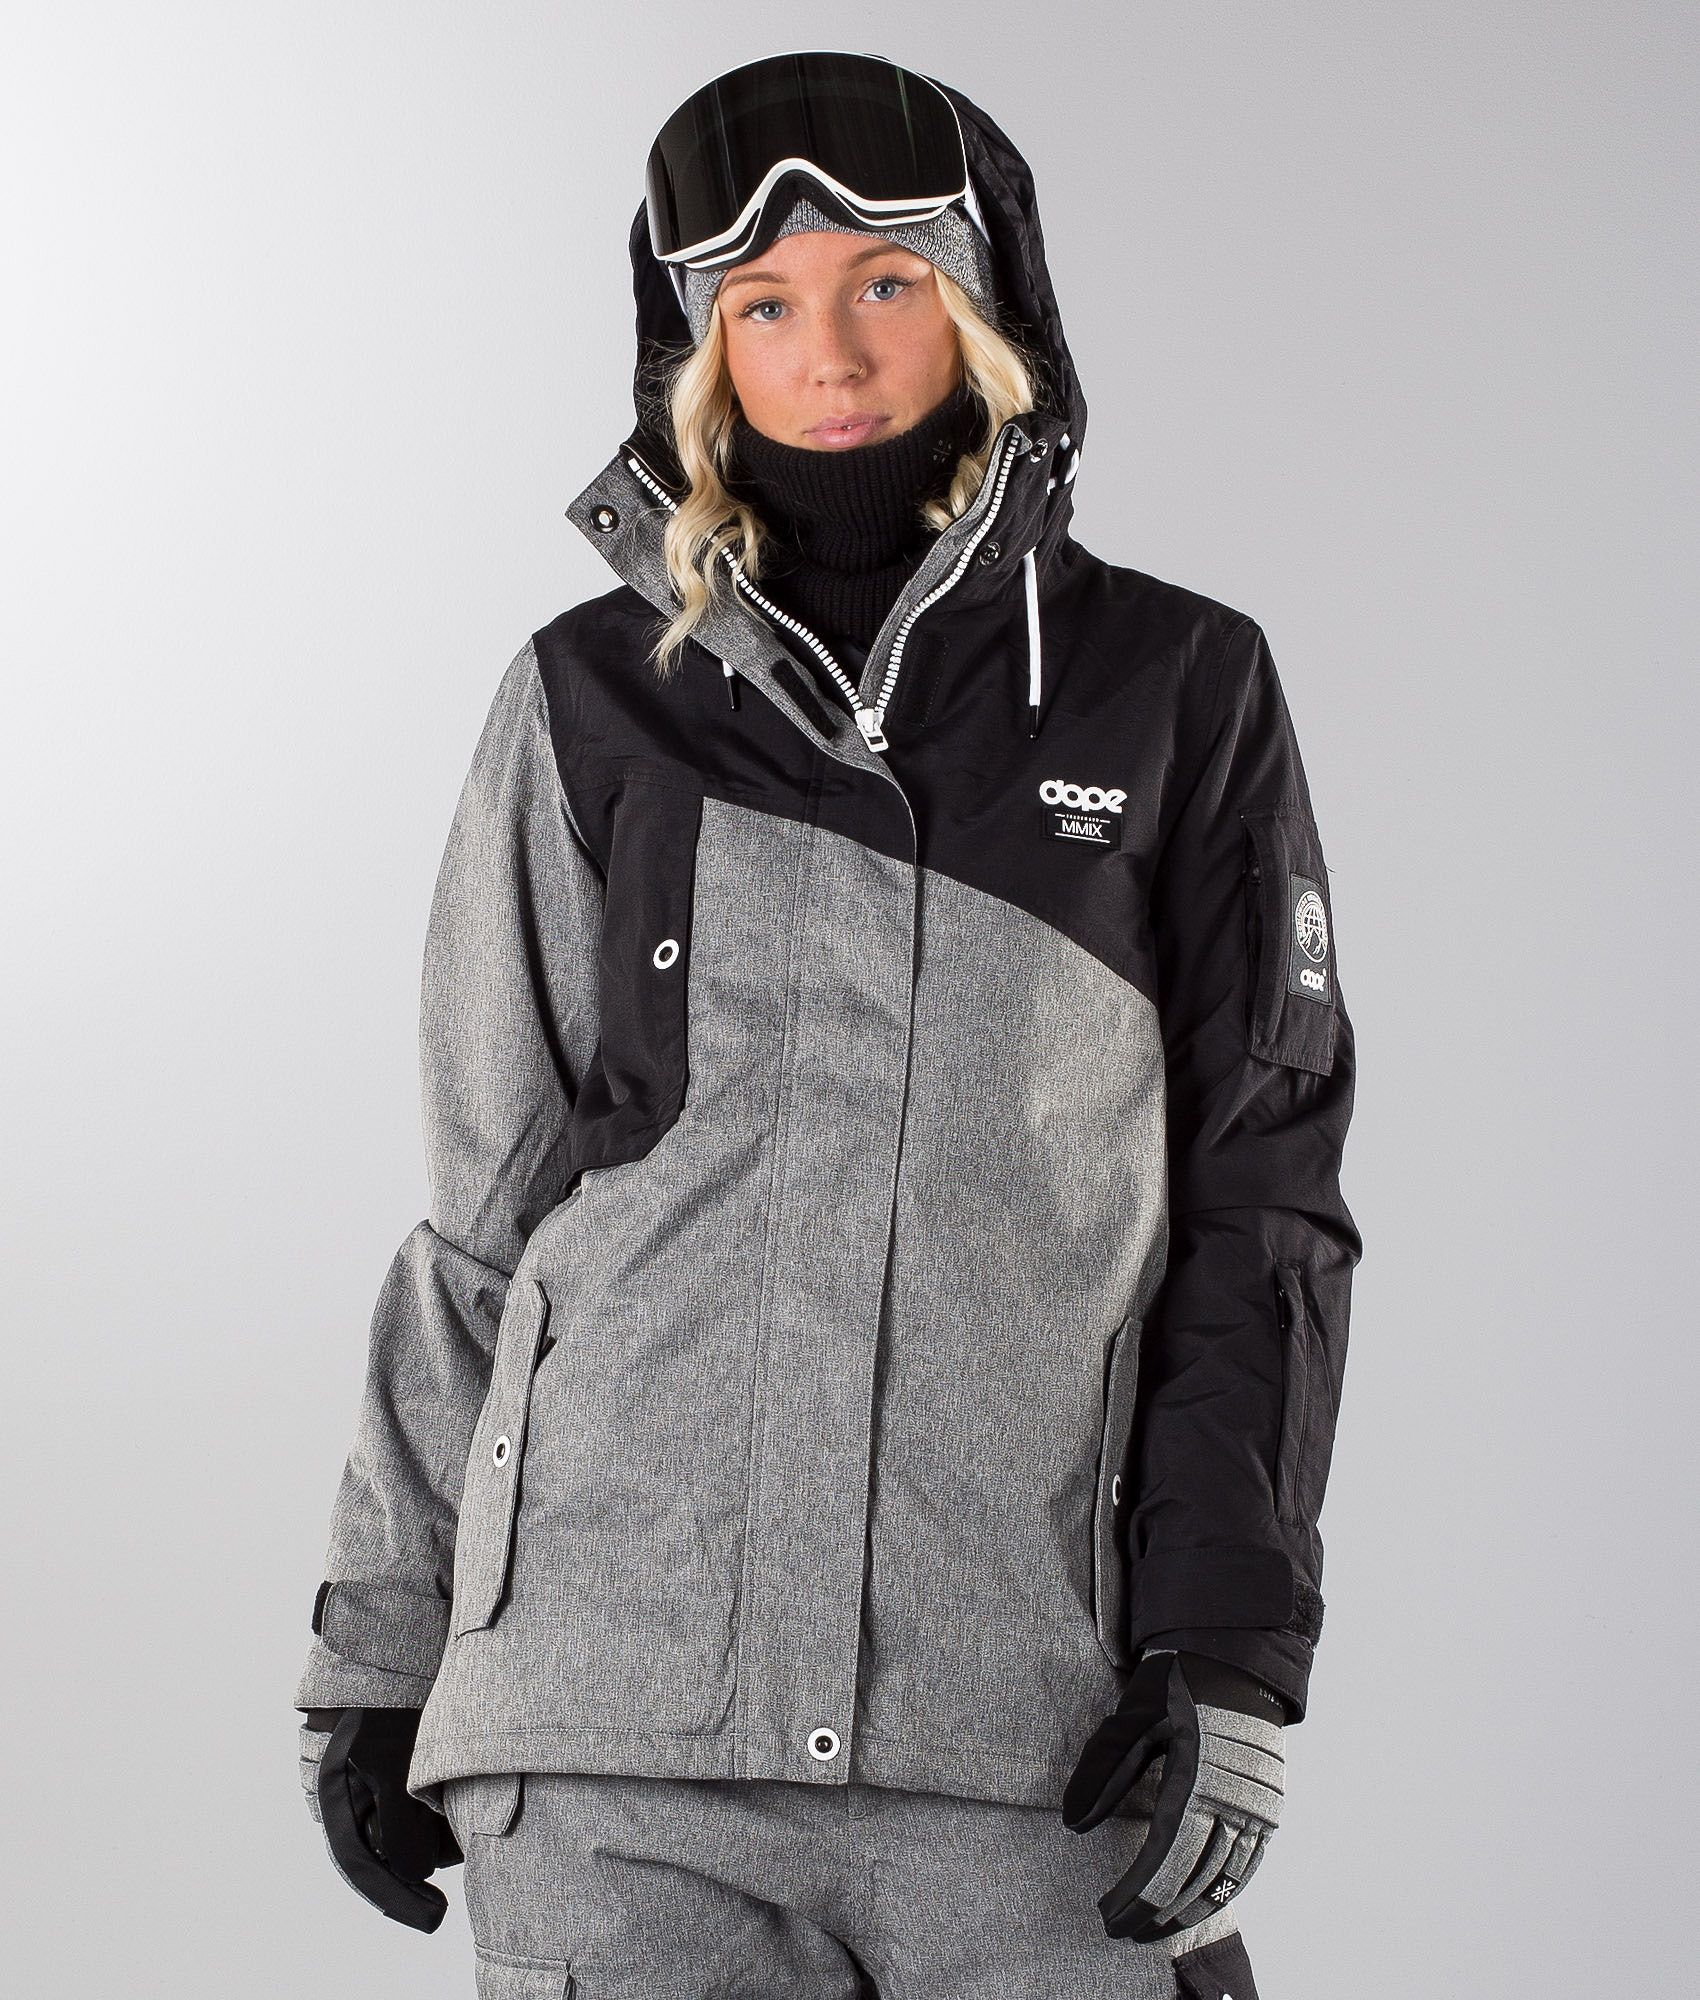 b3c3c9e9347f snowboarding ski outfits womens snowboard outfit